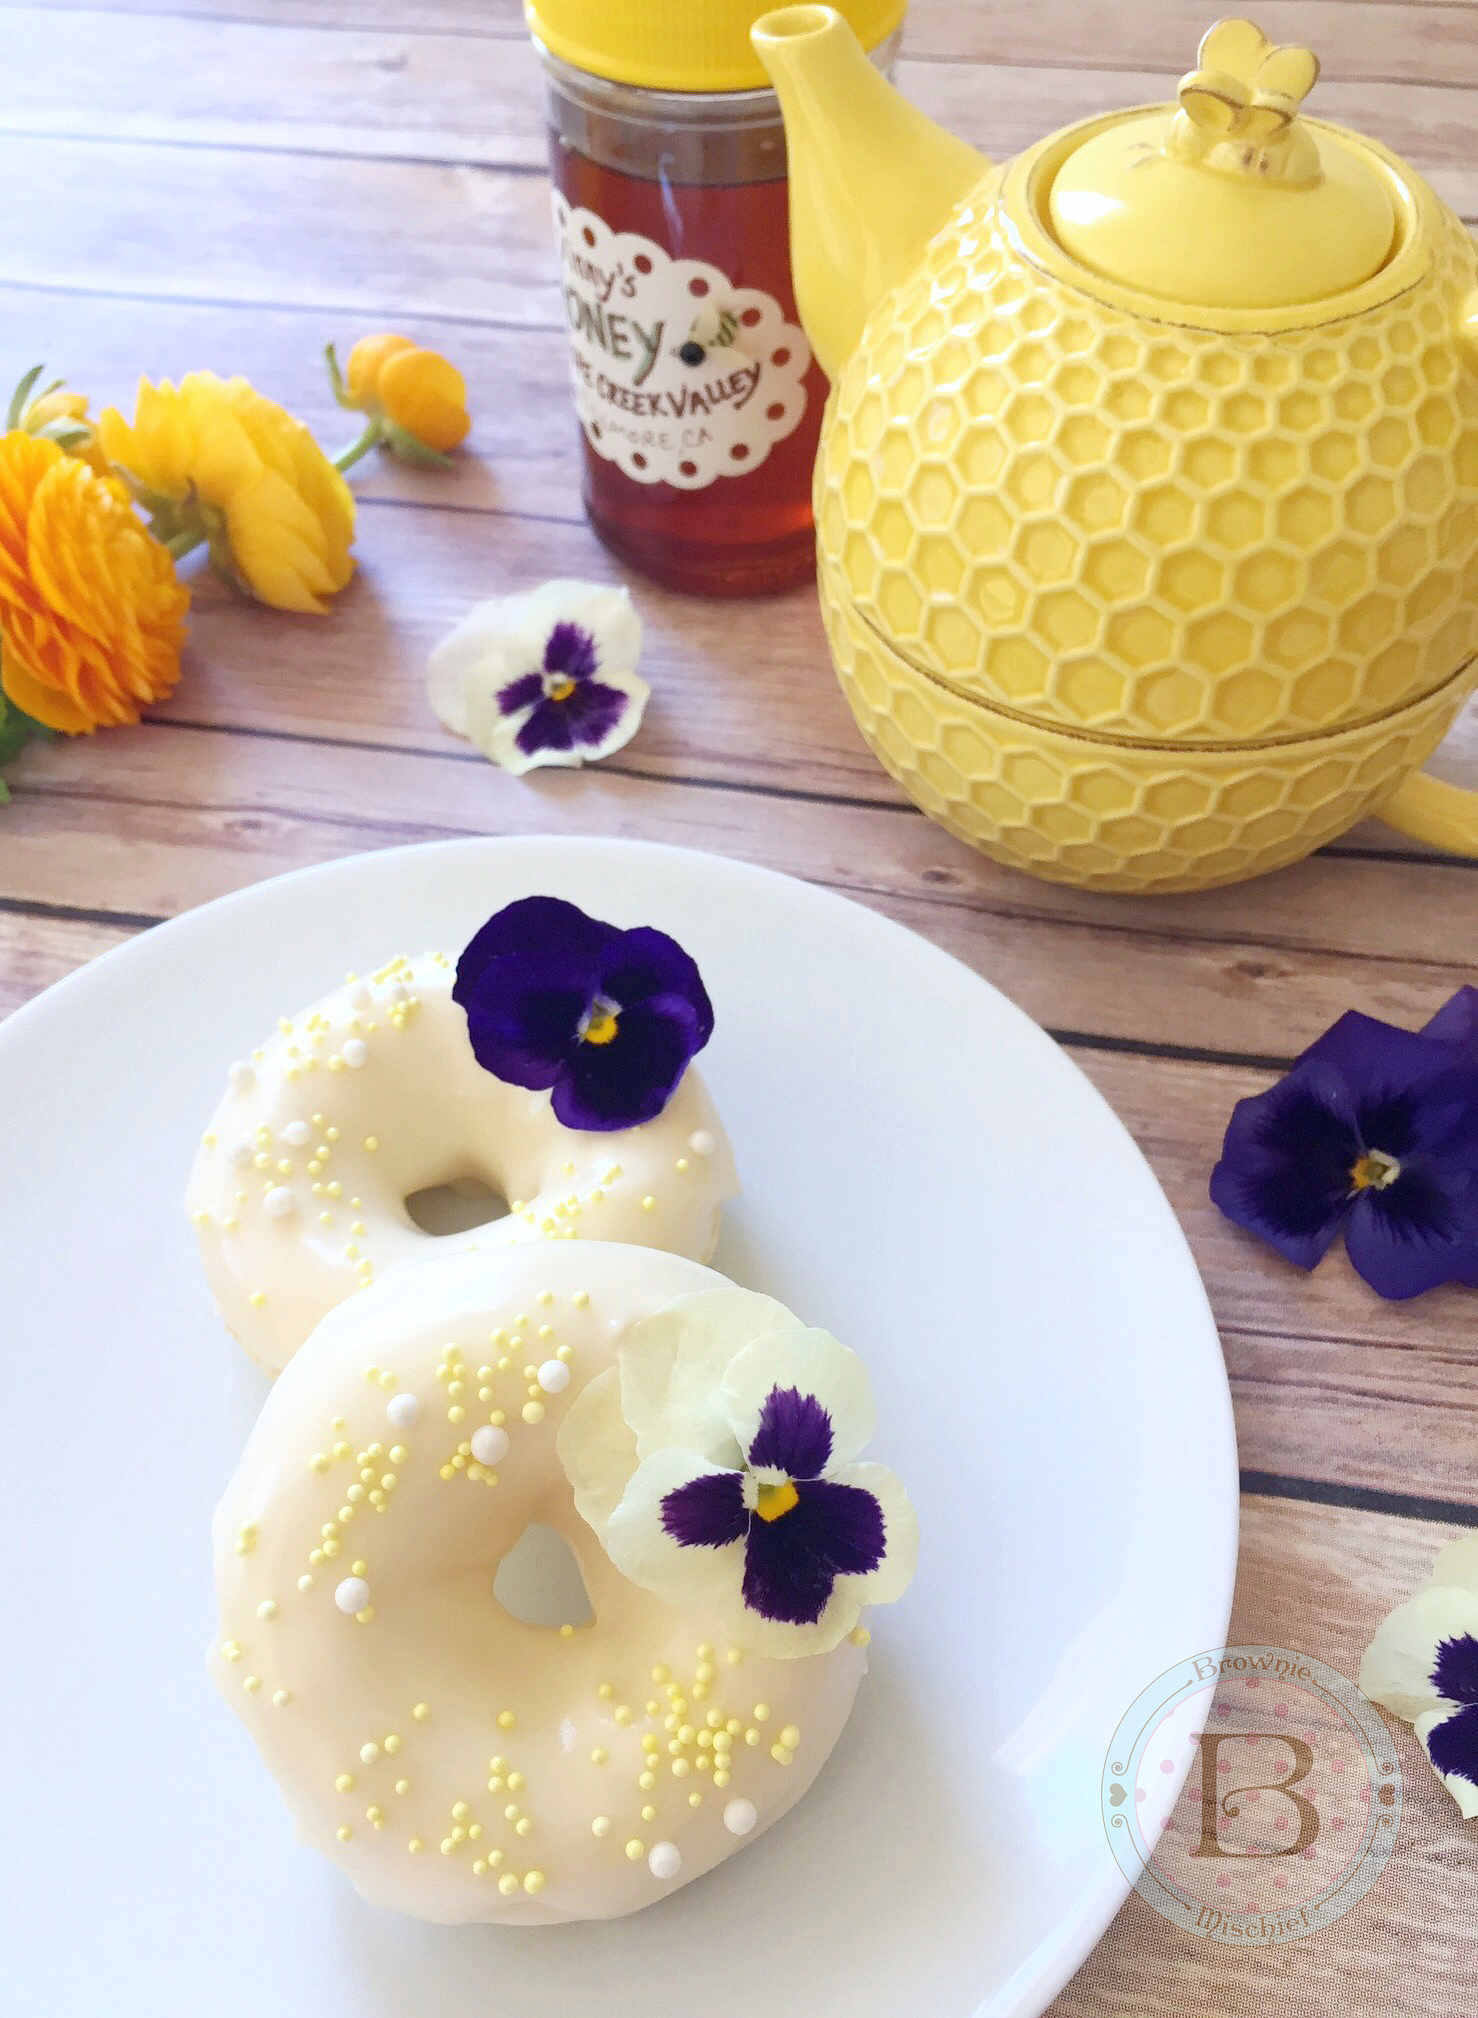 Lemon Buttermilk Donuts with Honey Cream Cheese Frosting by Brownie Mischief